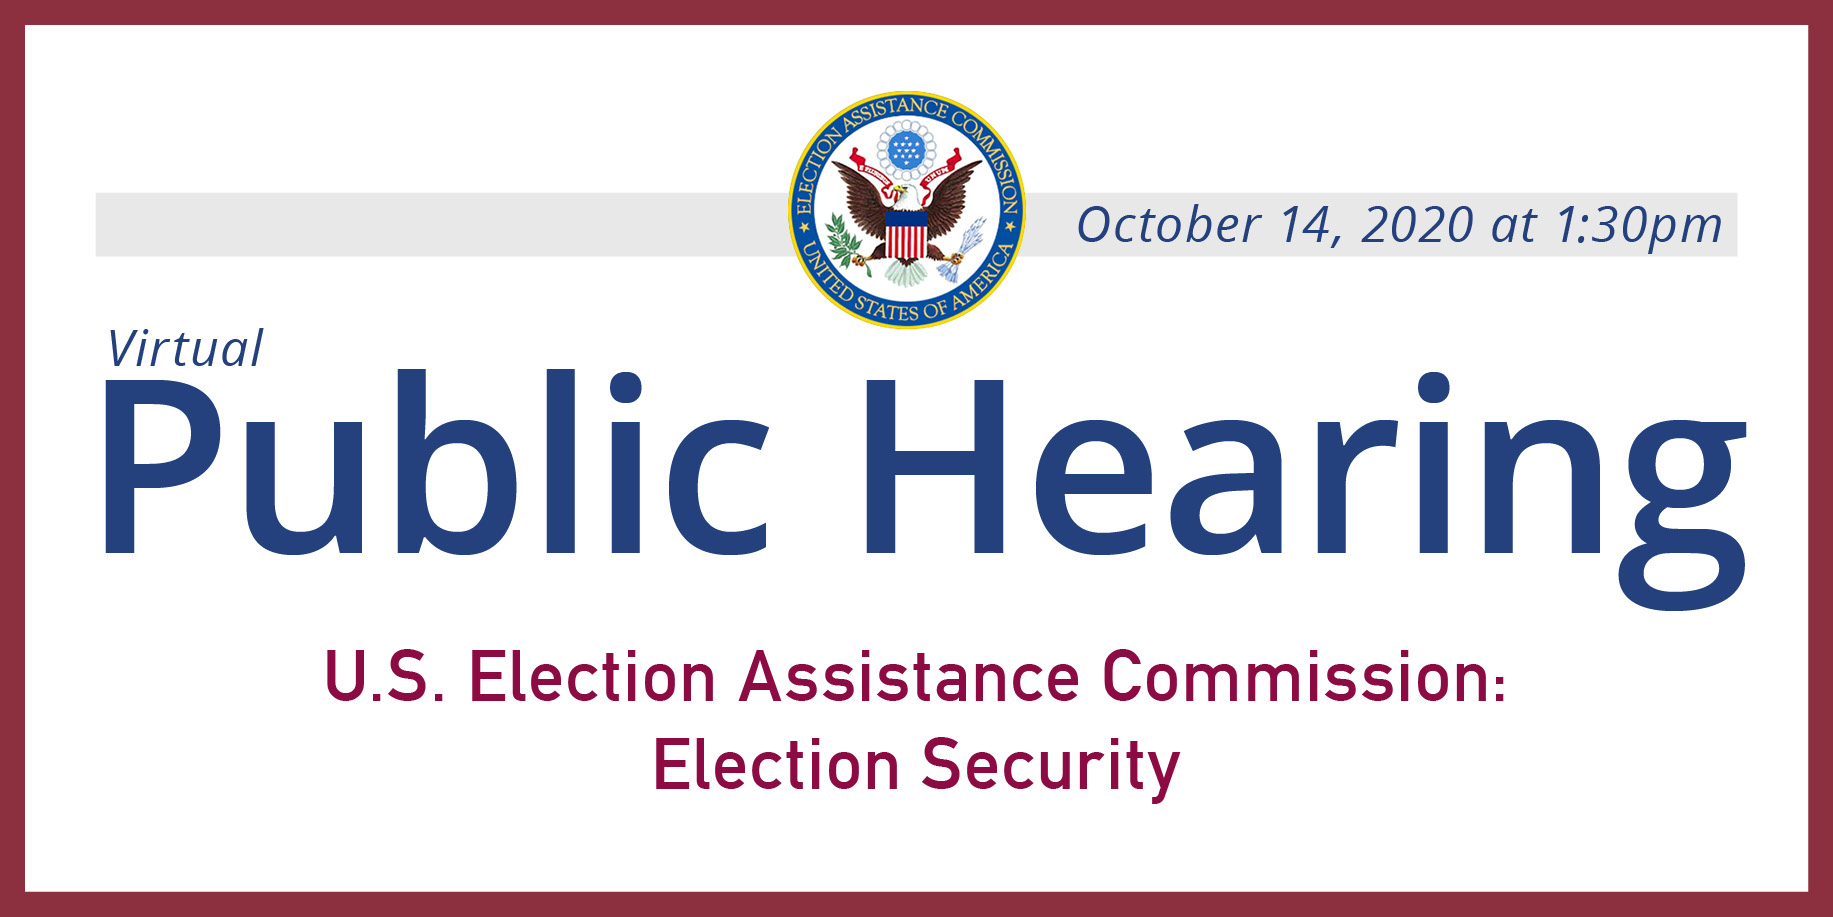 Public Hearing Election Assistance Commission Election Security. October 14, 2020 at 1:30pm